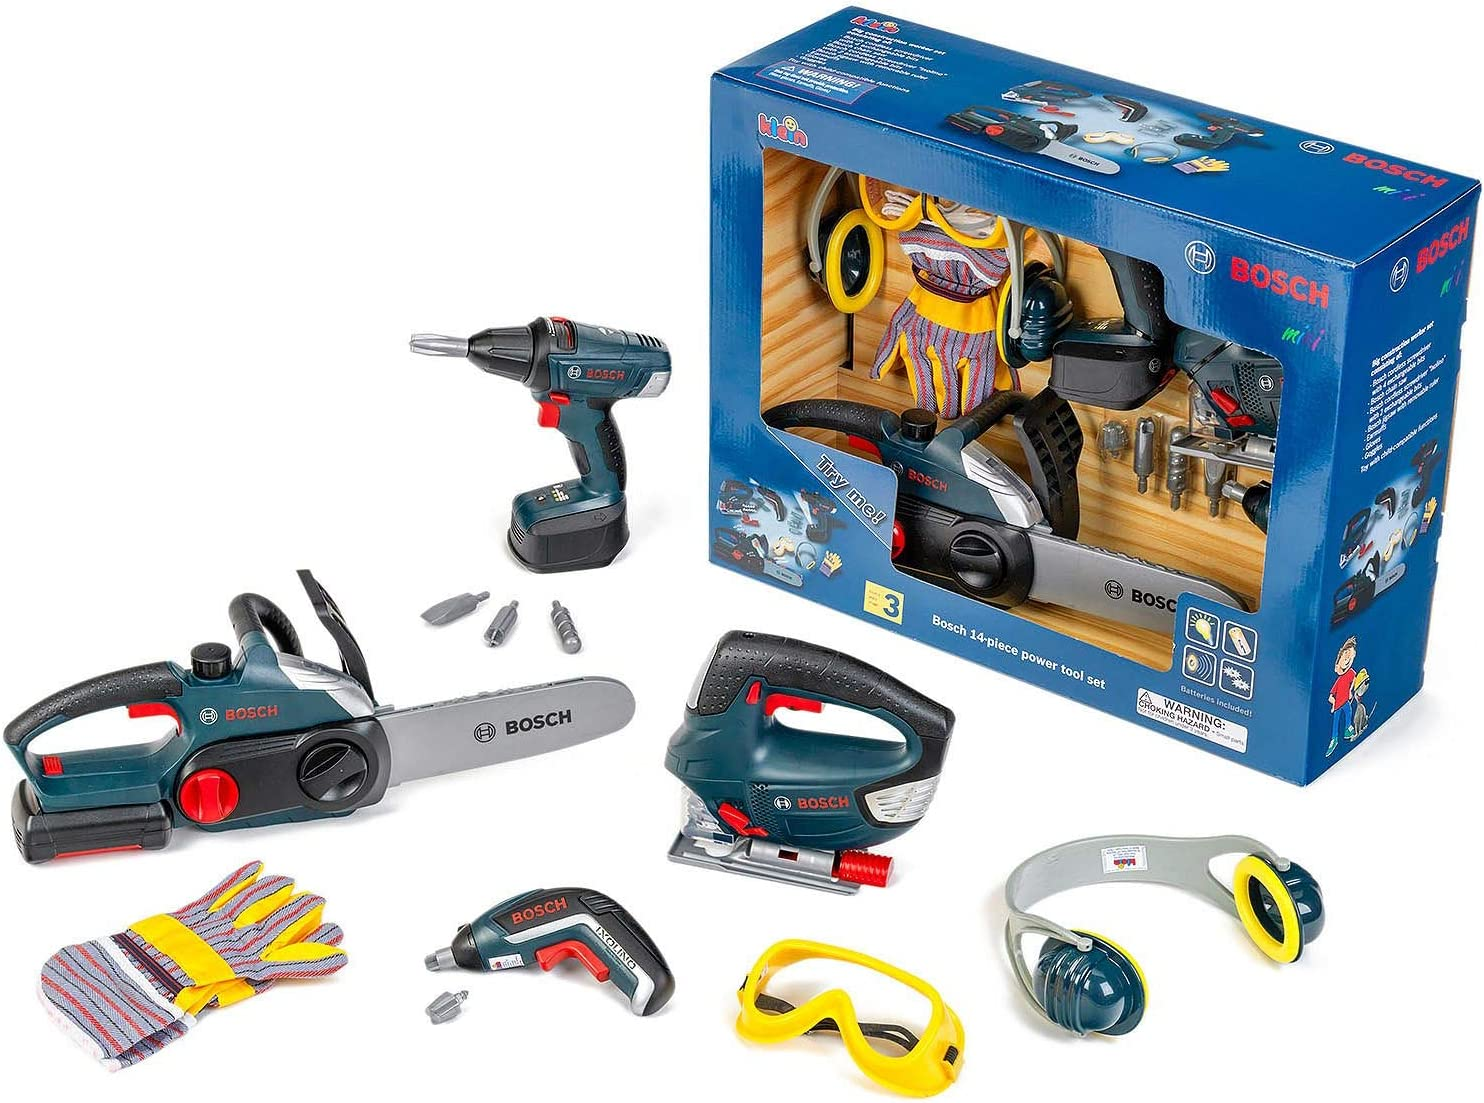 Bosch Large Toy Power Tools 14-Piece Set